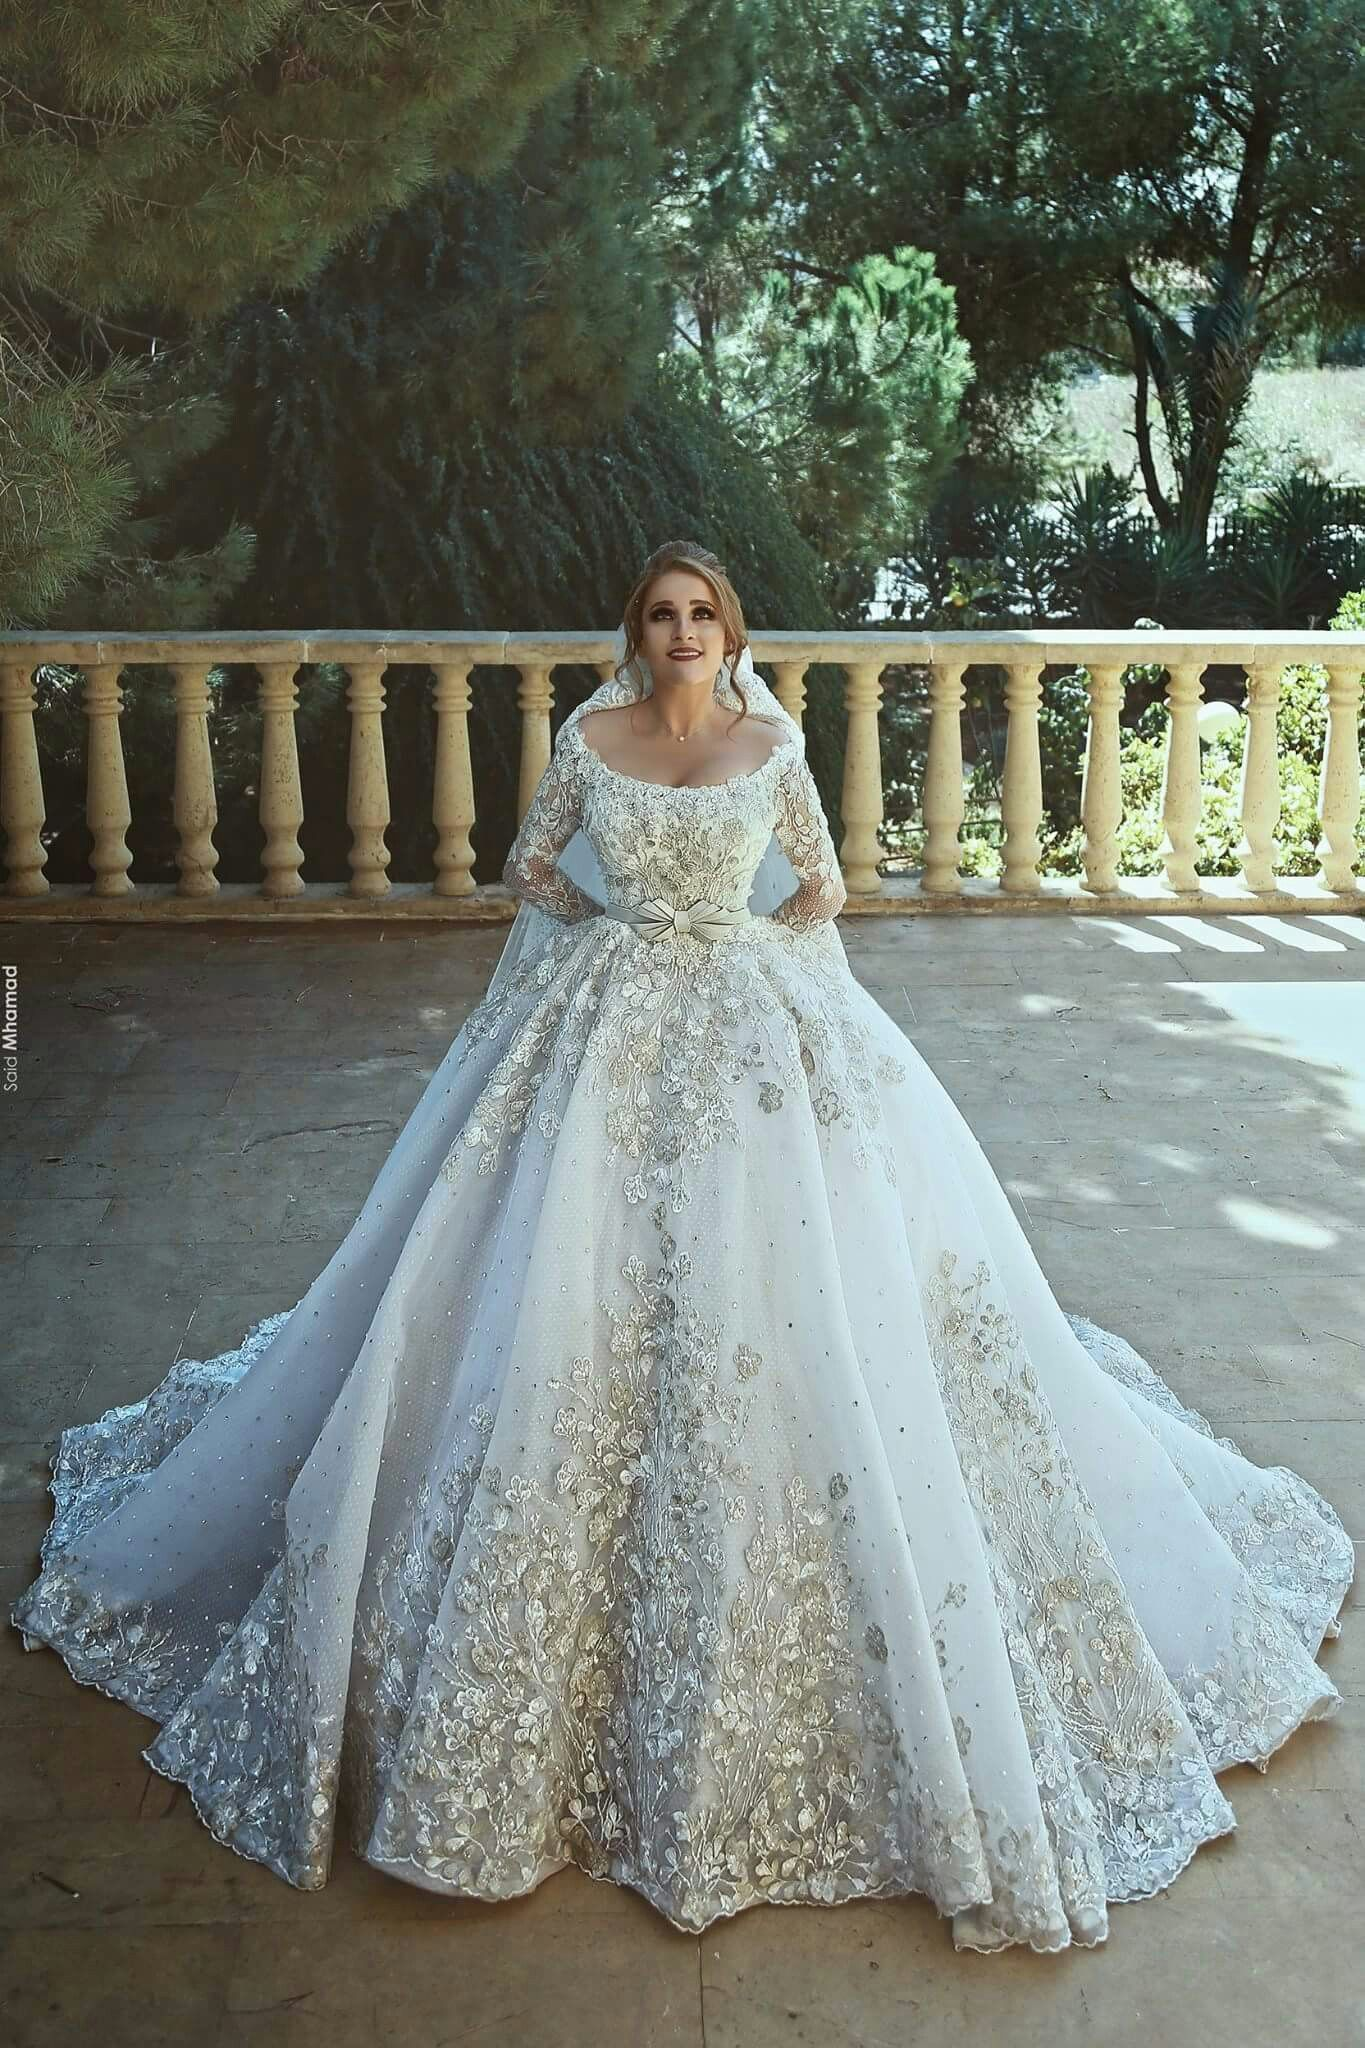 Pin de Alyssa Fields en Wedding gown | Pinterest | Vestidos de novia ...